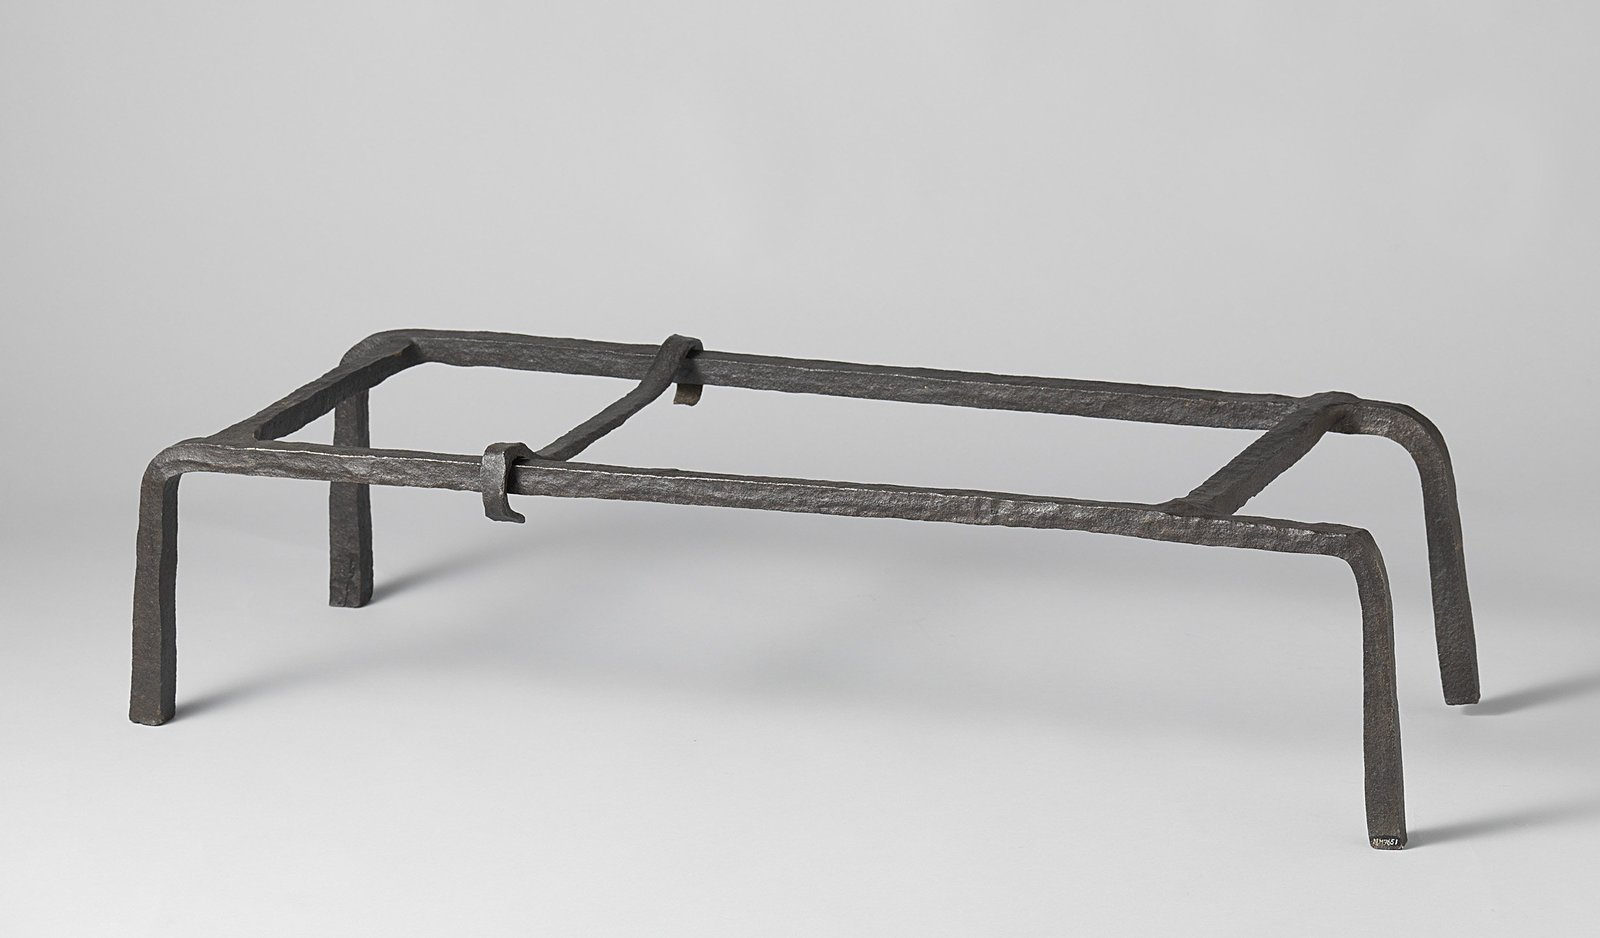 Andiron with cooking pots and a pair of fire tongs